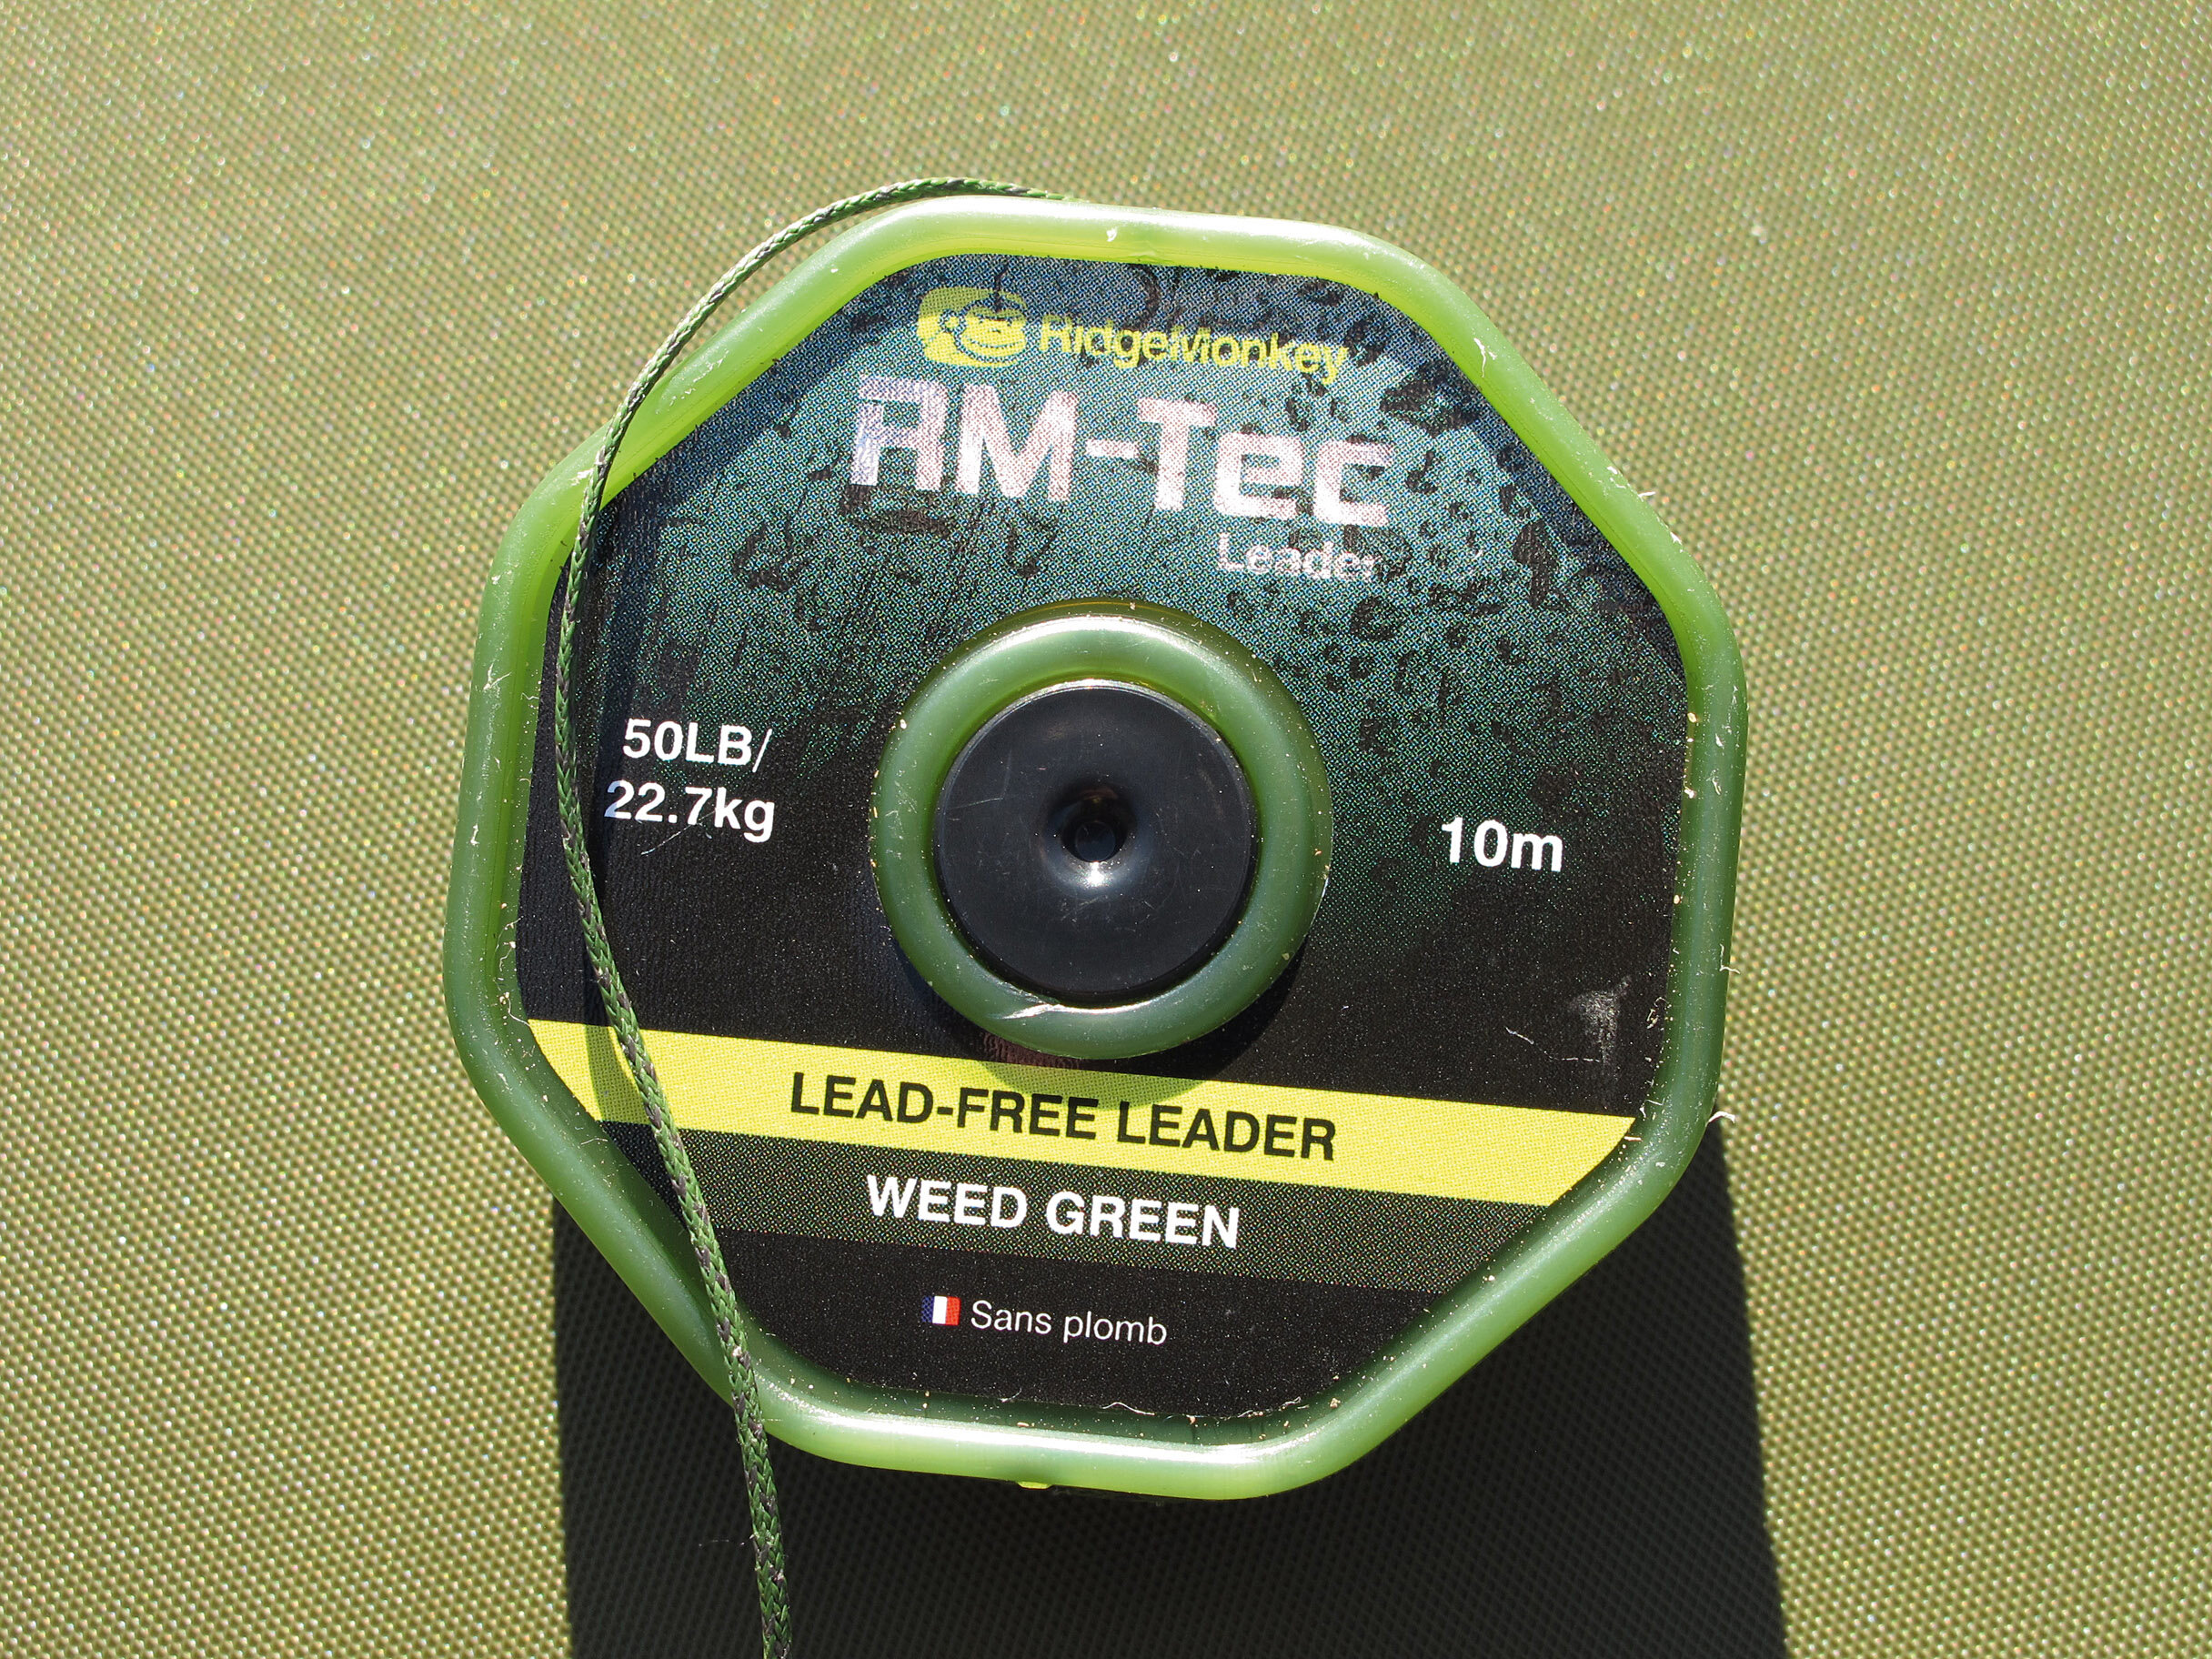 The all-new RM-Tec lead-free leader – it's also good for hooklinks!